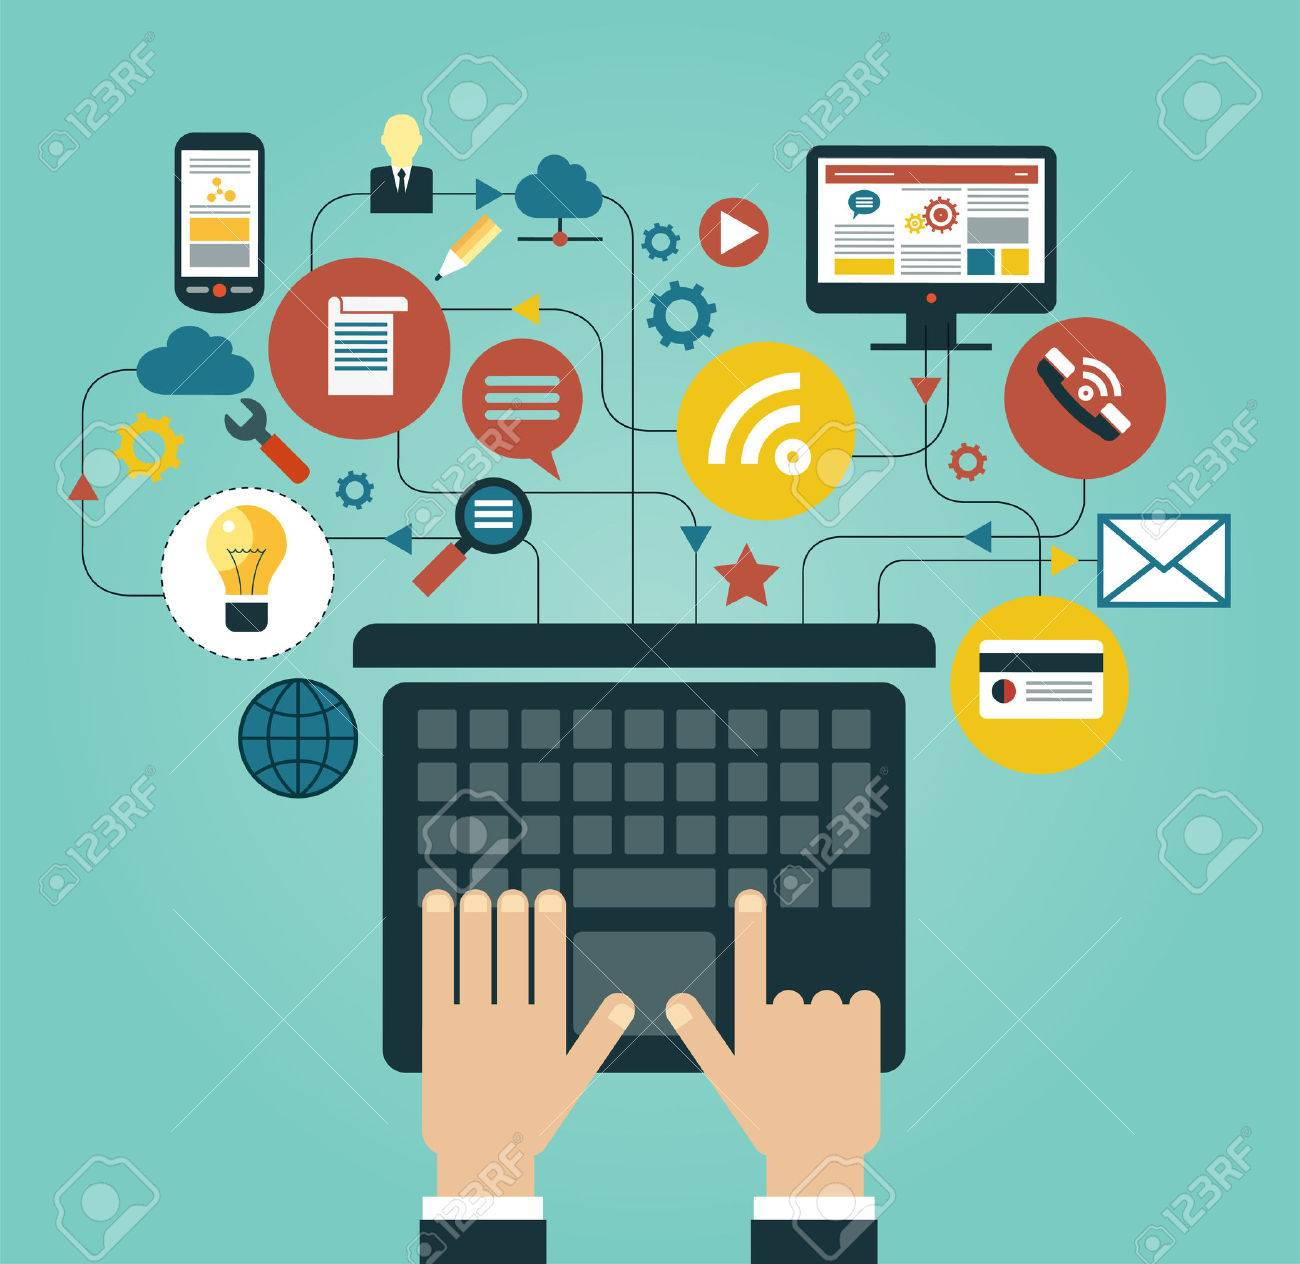 Human hand with a laptop surrounded by icons. Concept of communication in the network - 46874158